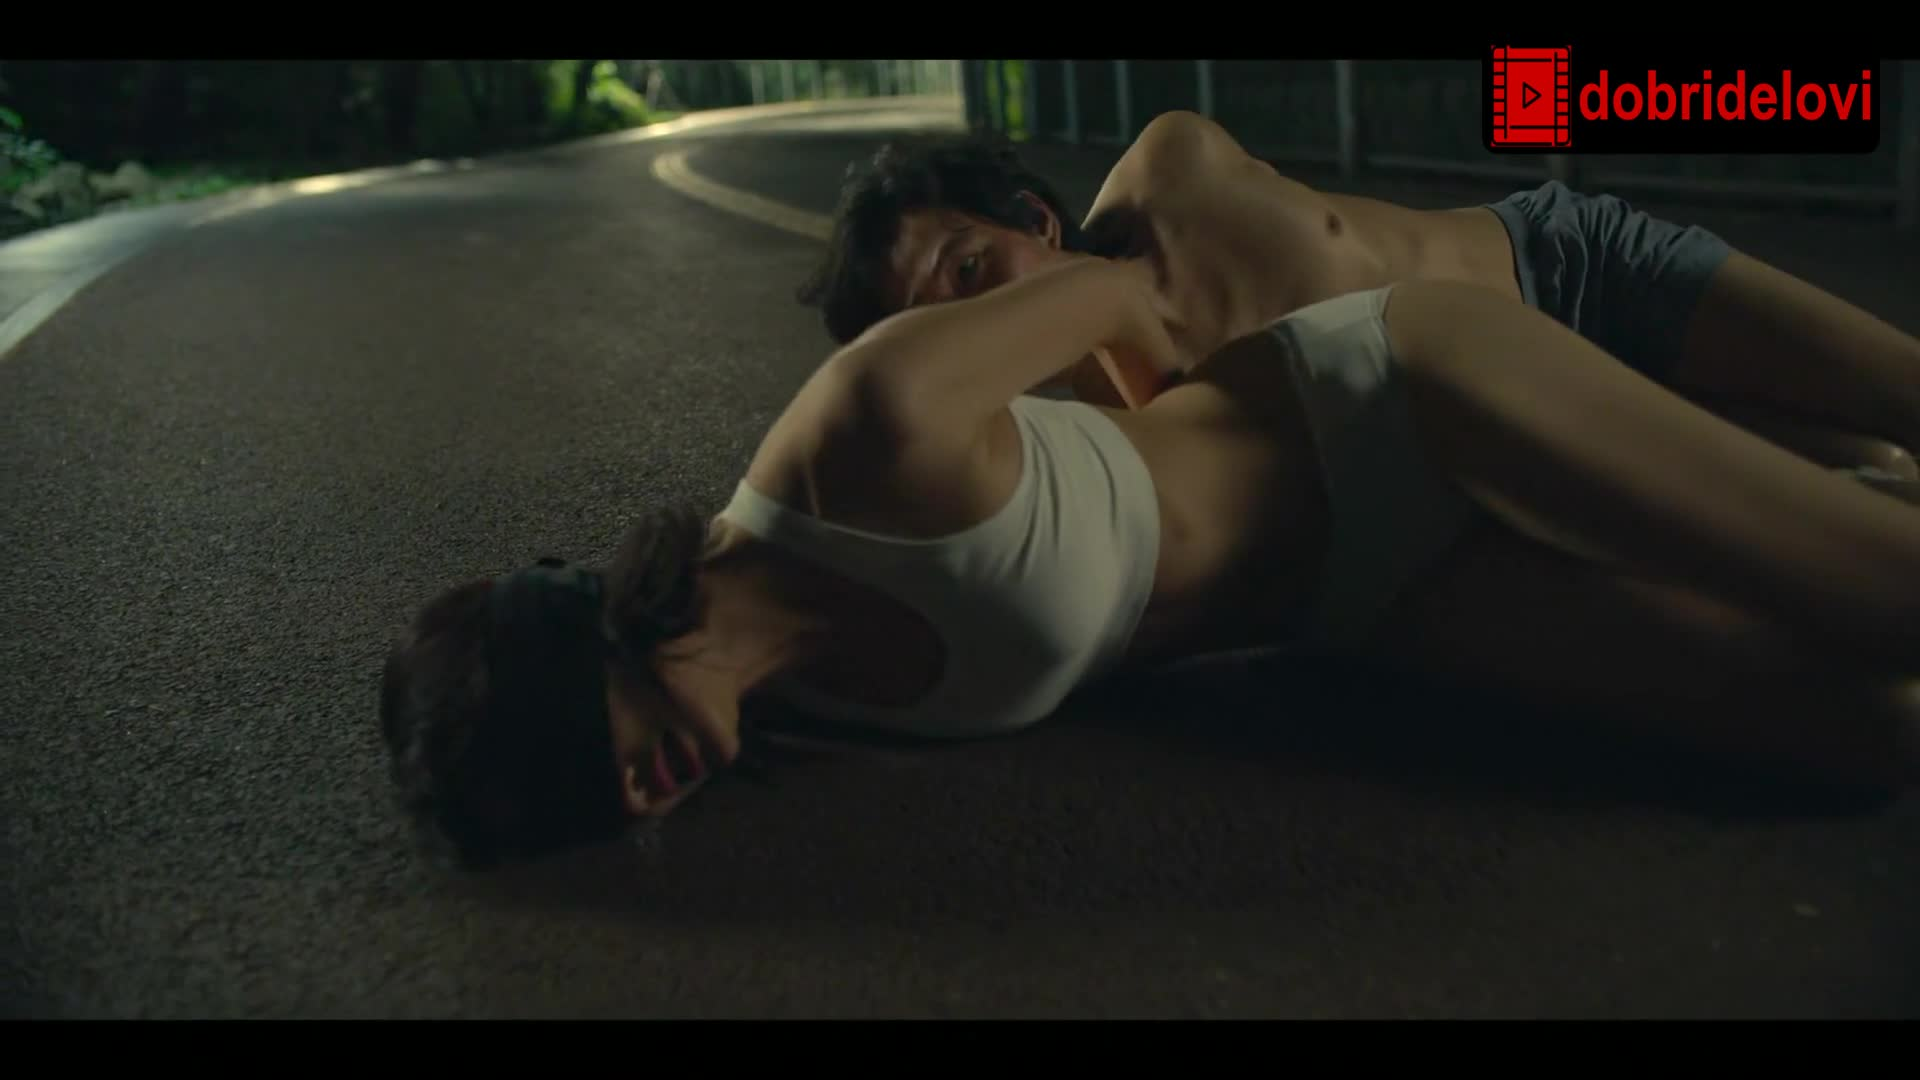 Jung Ho Yeon tied up in underwear scene from Squid Game